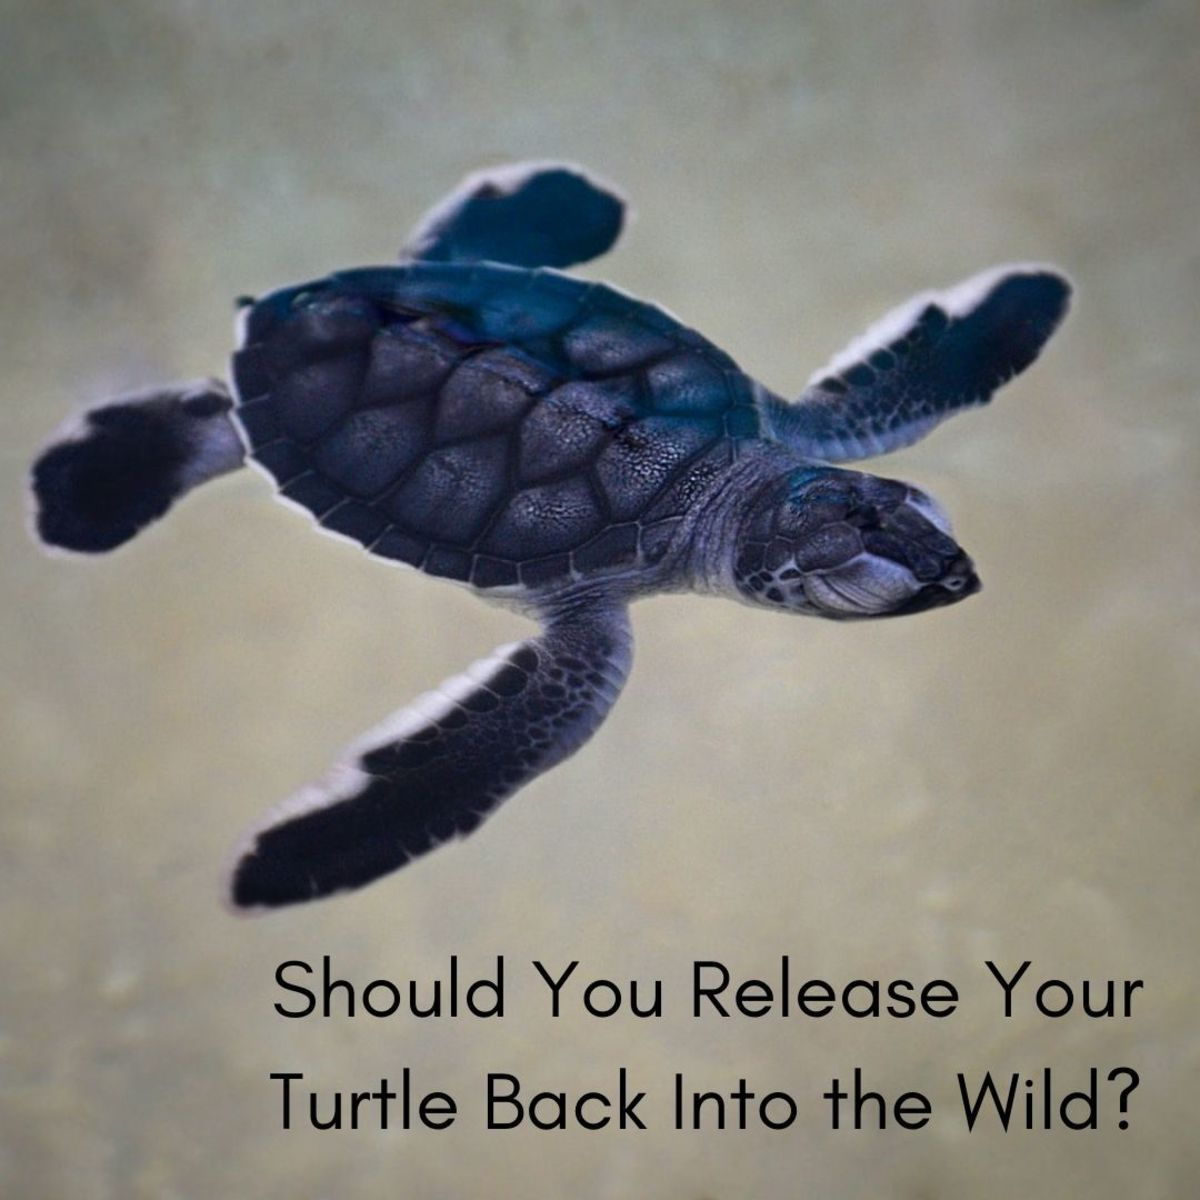 A lot of people think it is cruel to release a turtle back to the wild after being kept as a pet for so long. But is this true?